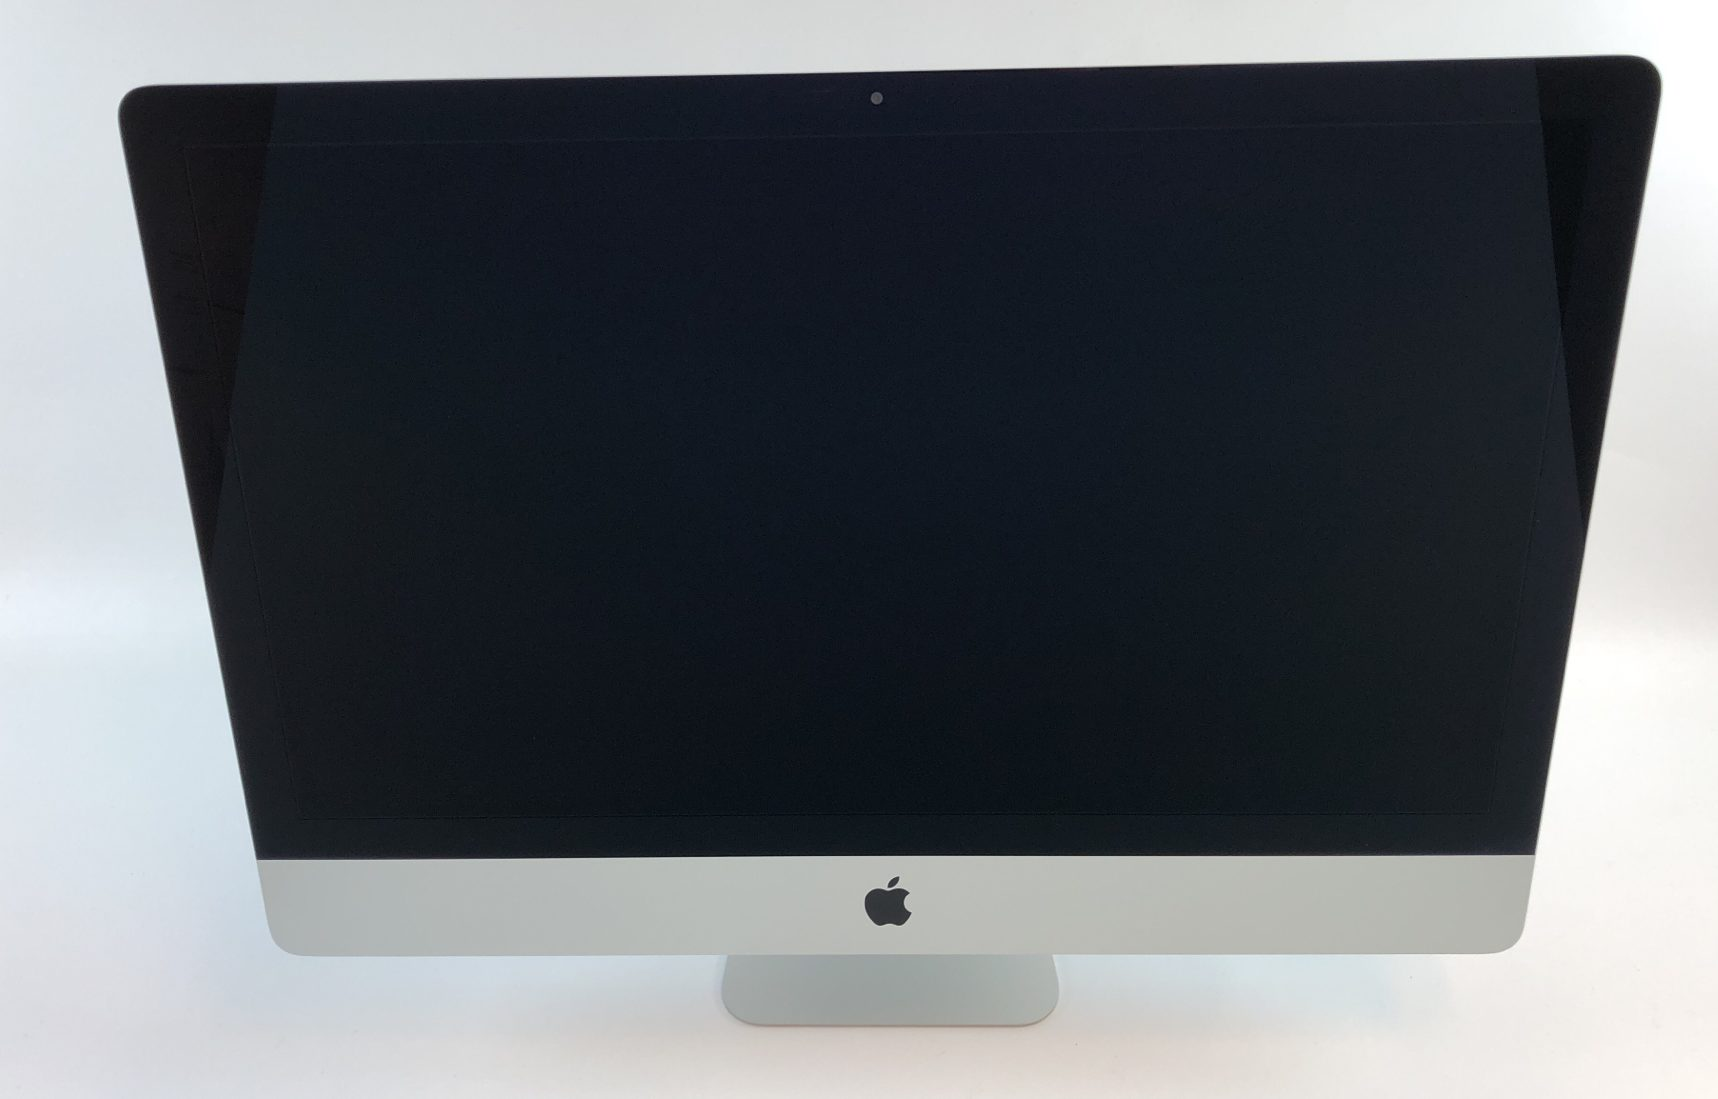 "iMac 27"" Retina 5K Late 2015 (Intel Quad-Core i5 3.2 GHz 24 GB RAM 1 TB Fusion Drive), Intel Quad-Core i5 3.2 GHz, 24 GB RAM, 1 TB Fusion Drive, immagine 1"